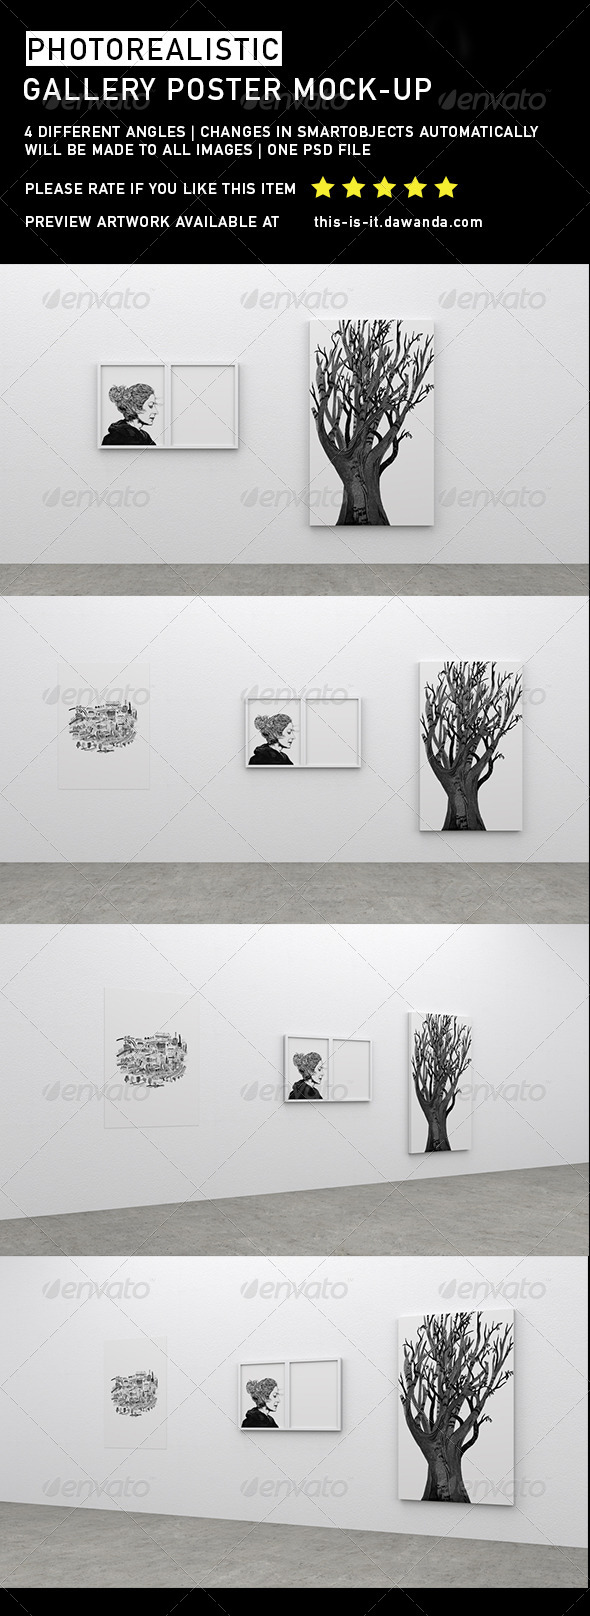 GraphicRiver Photorealistic Gallery Poster Mock-Up 3 6757967